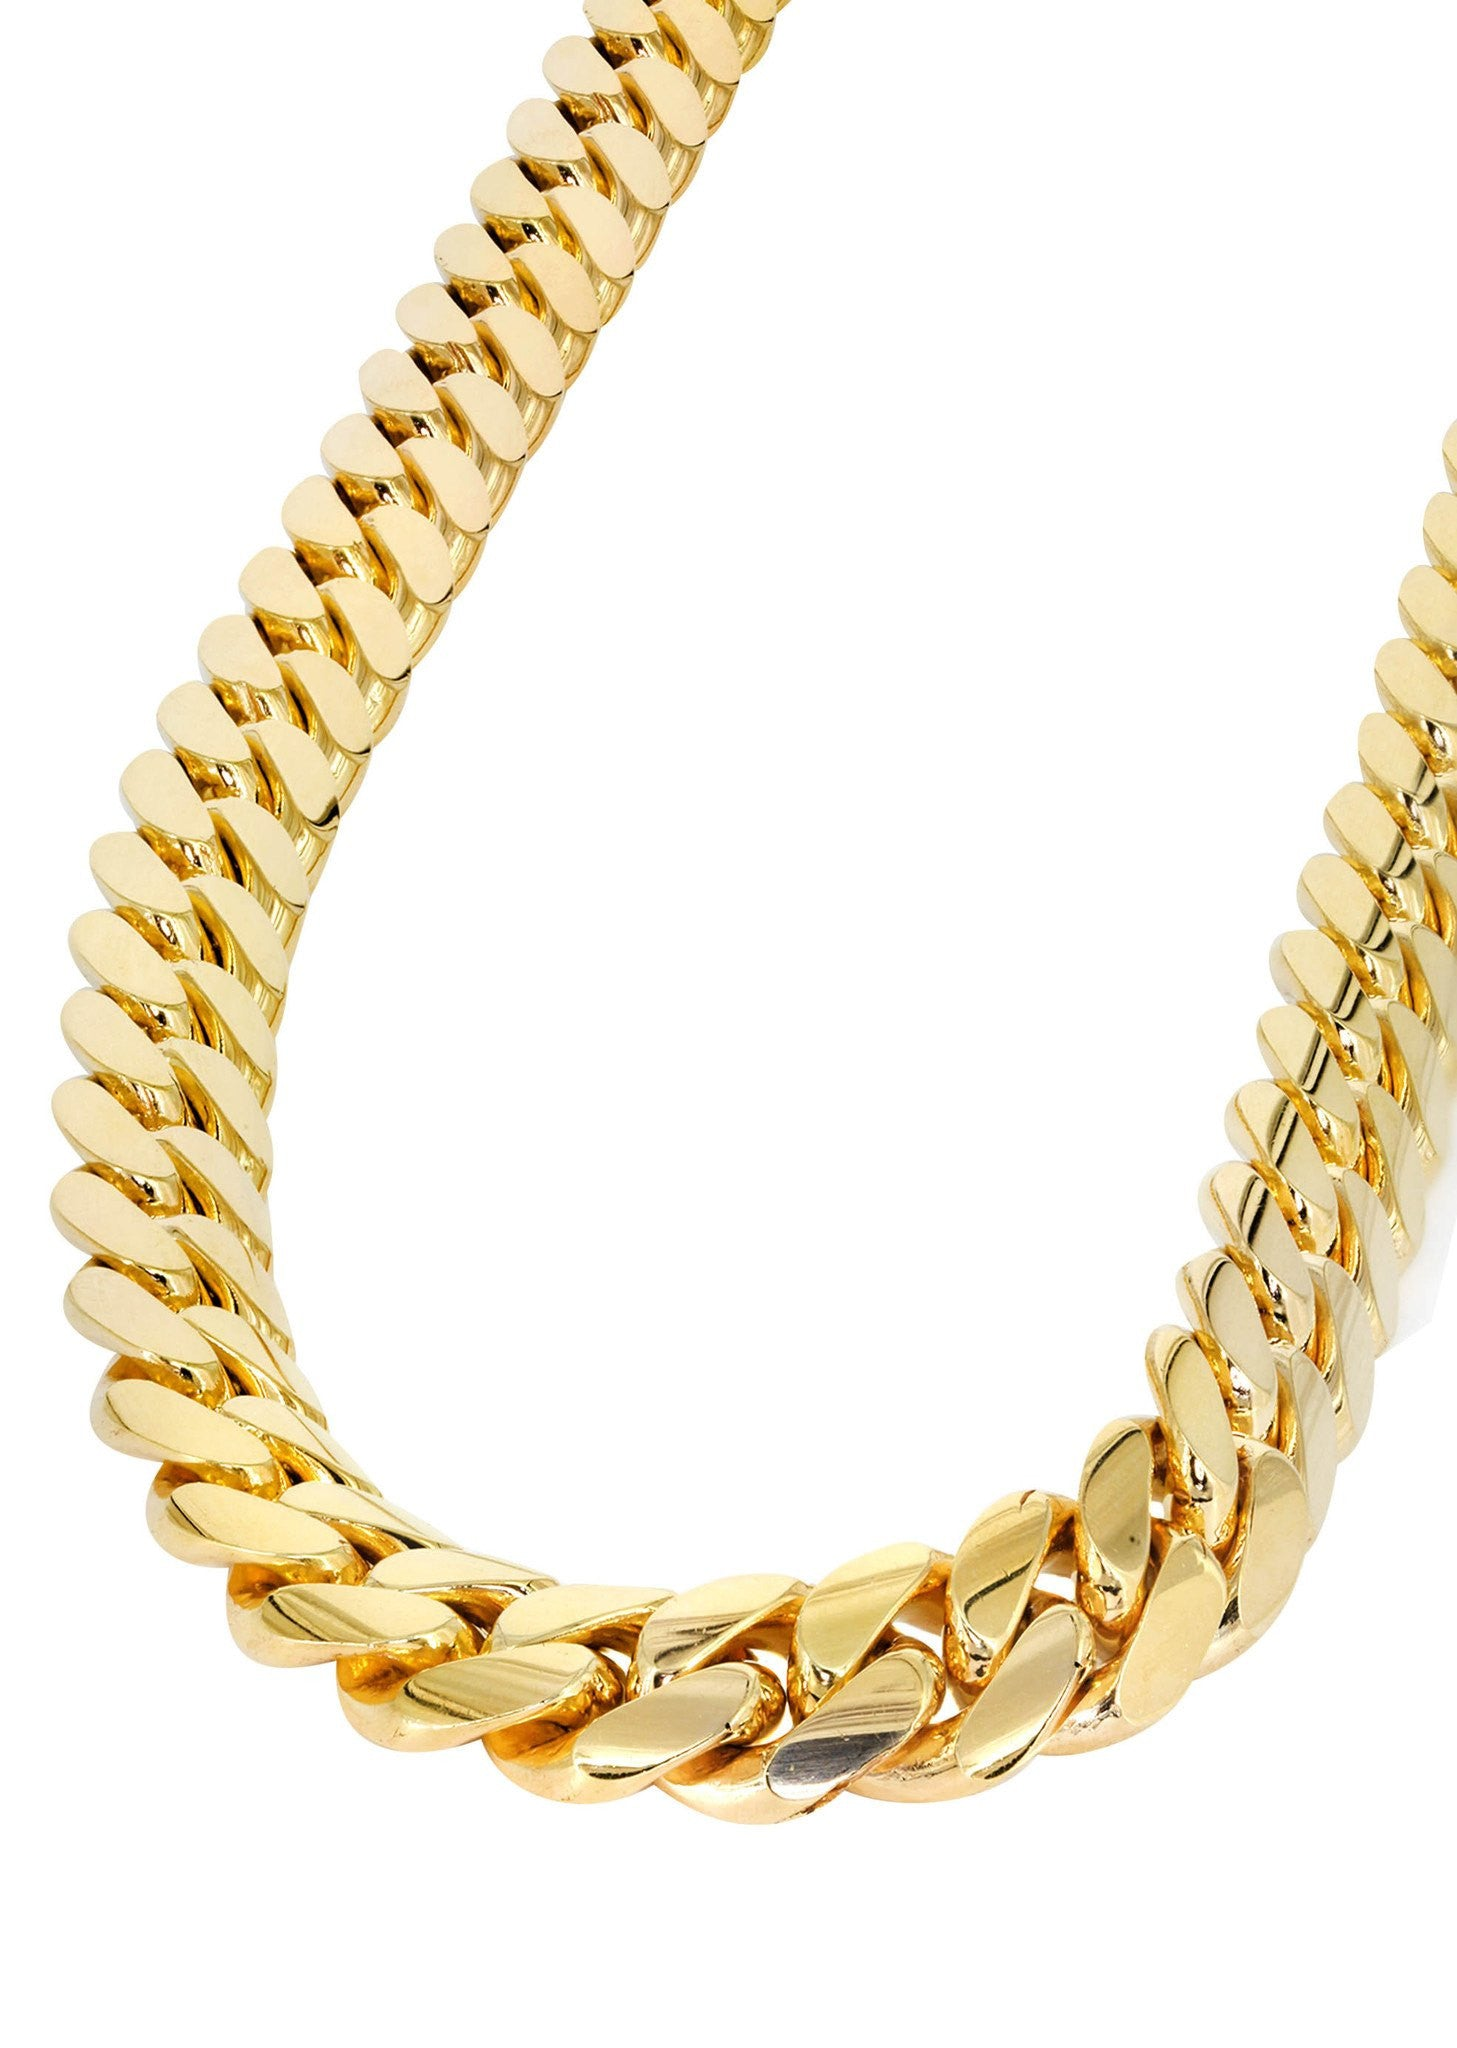 10k Gold Cuban Link Chain >> Mens Chain Solid Miami Cuban Link 10k Gold Frostnyc